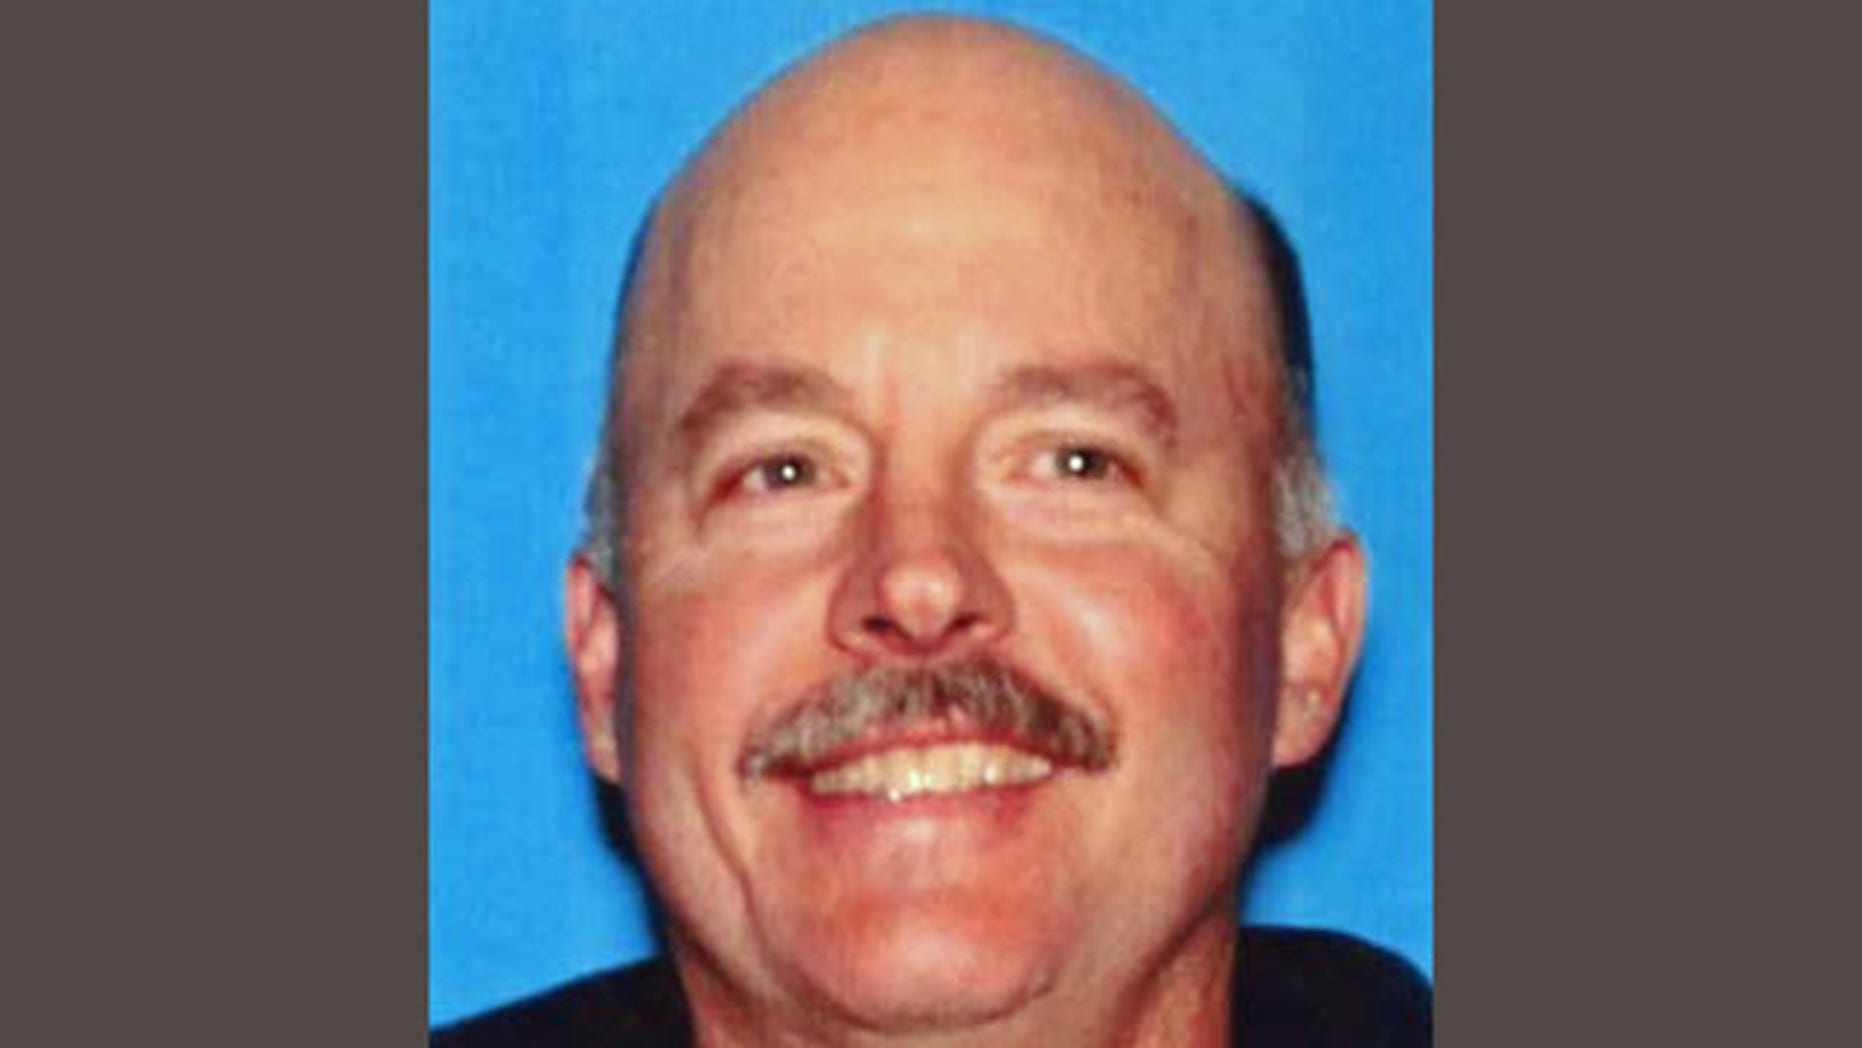 December 20, 2013: This photo provided by the California Department of Motor Vehicles via the Reno Gazette-Journal and KXTV News 10 shows Alan Frazier. Frazier, who complained he had a botched 2010 surgery, left a suicide note outlining plans for his attack before targeting physicians in a deadly rampage at a medical office that left one doctor dead and another critically wounded. (AP Photo/California Department of Motor Vehicles via Reno Gazette-Journal and KXTV News 10)